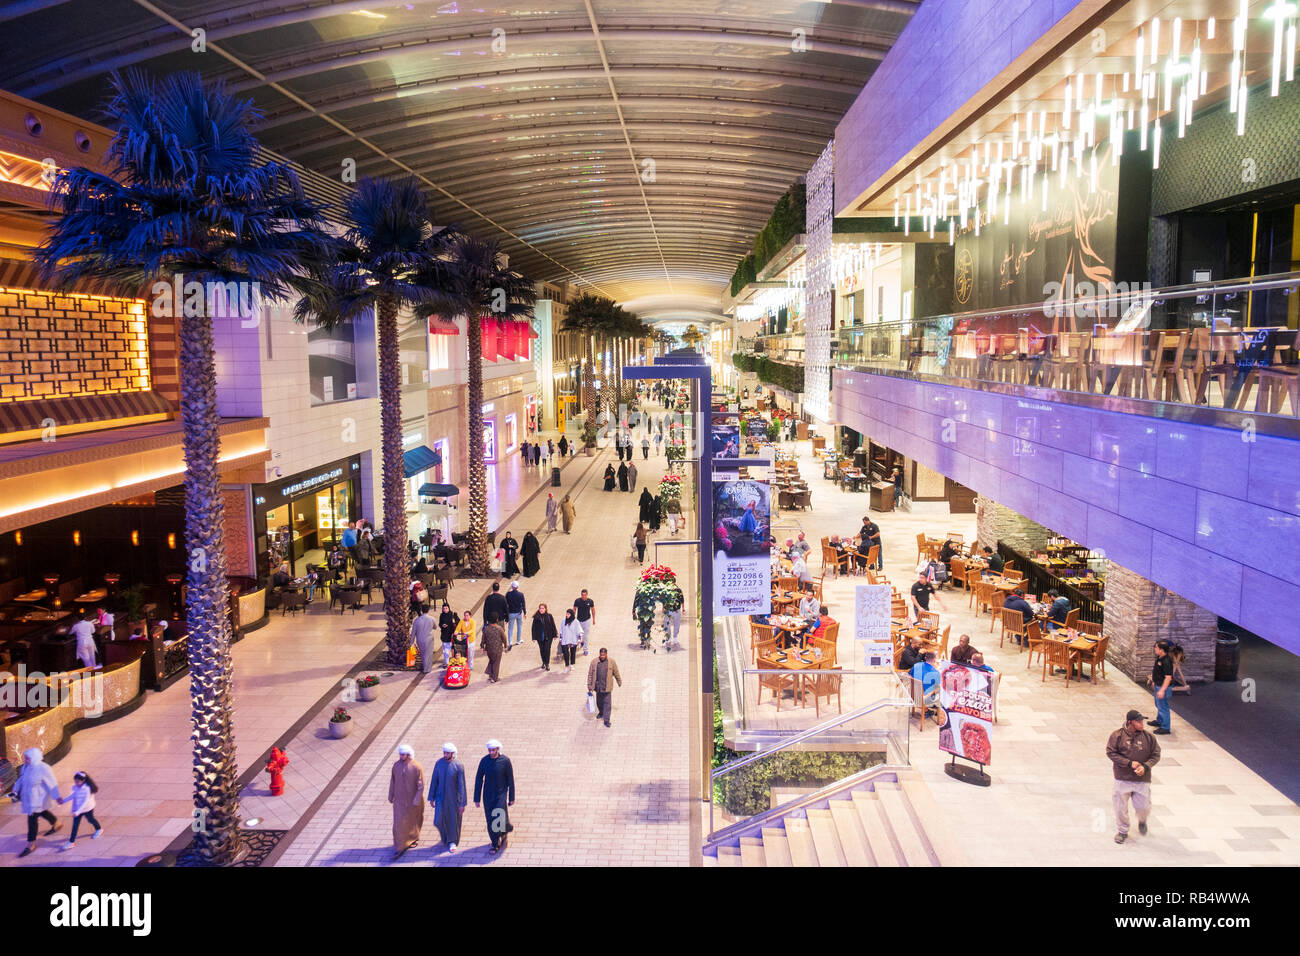 Interior of The Avenues shopping mall in Kuwait City, Kuwait - Stock Image